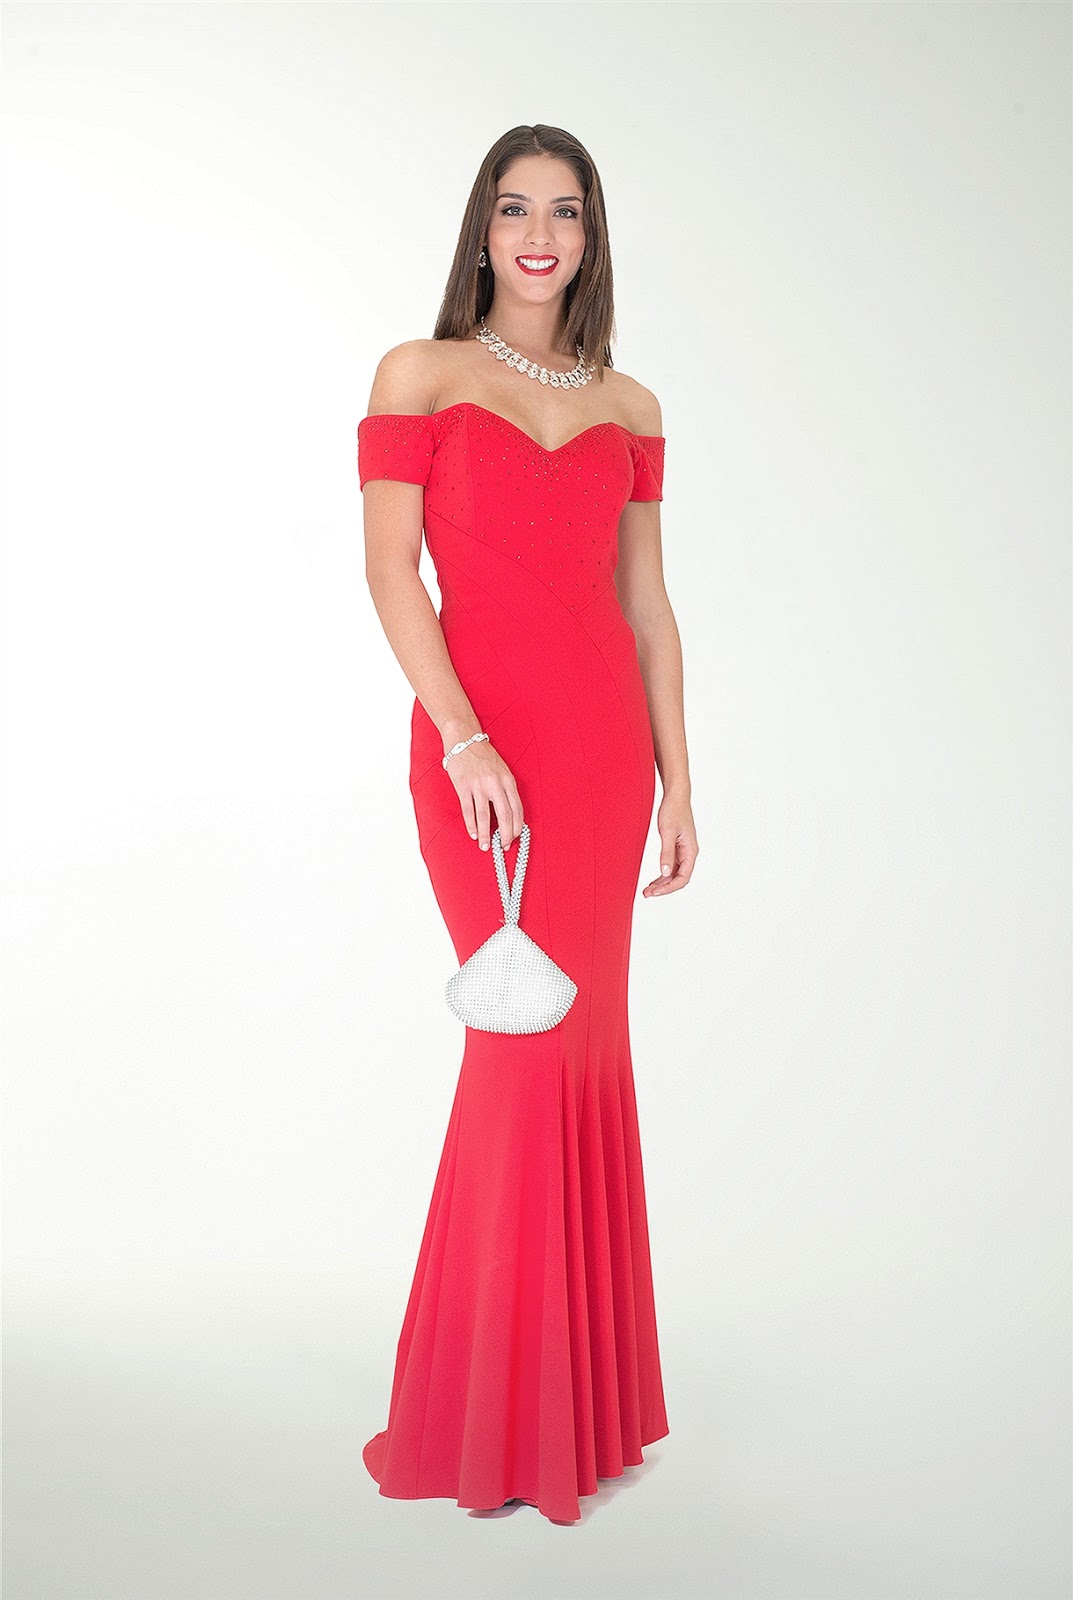 Find great deals on eBay for vestidos de gala. Shop with confidence.